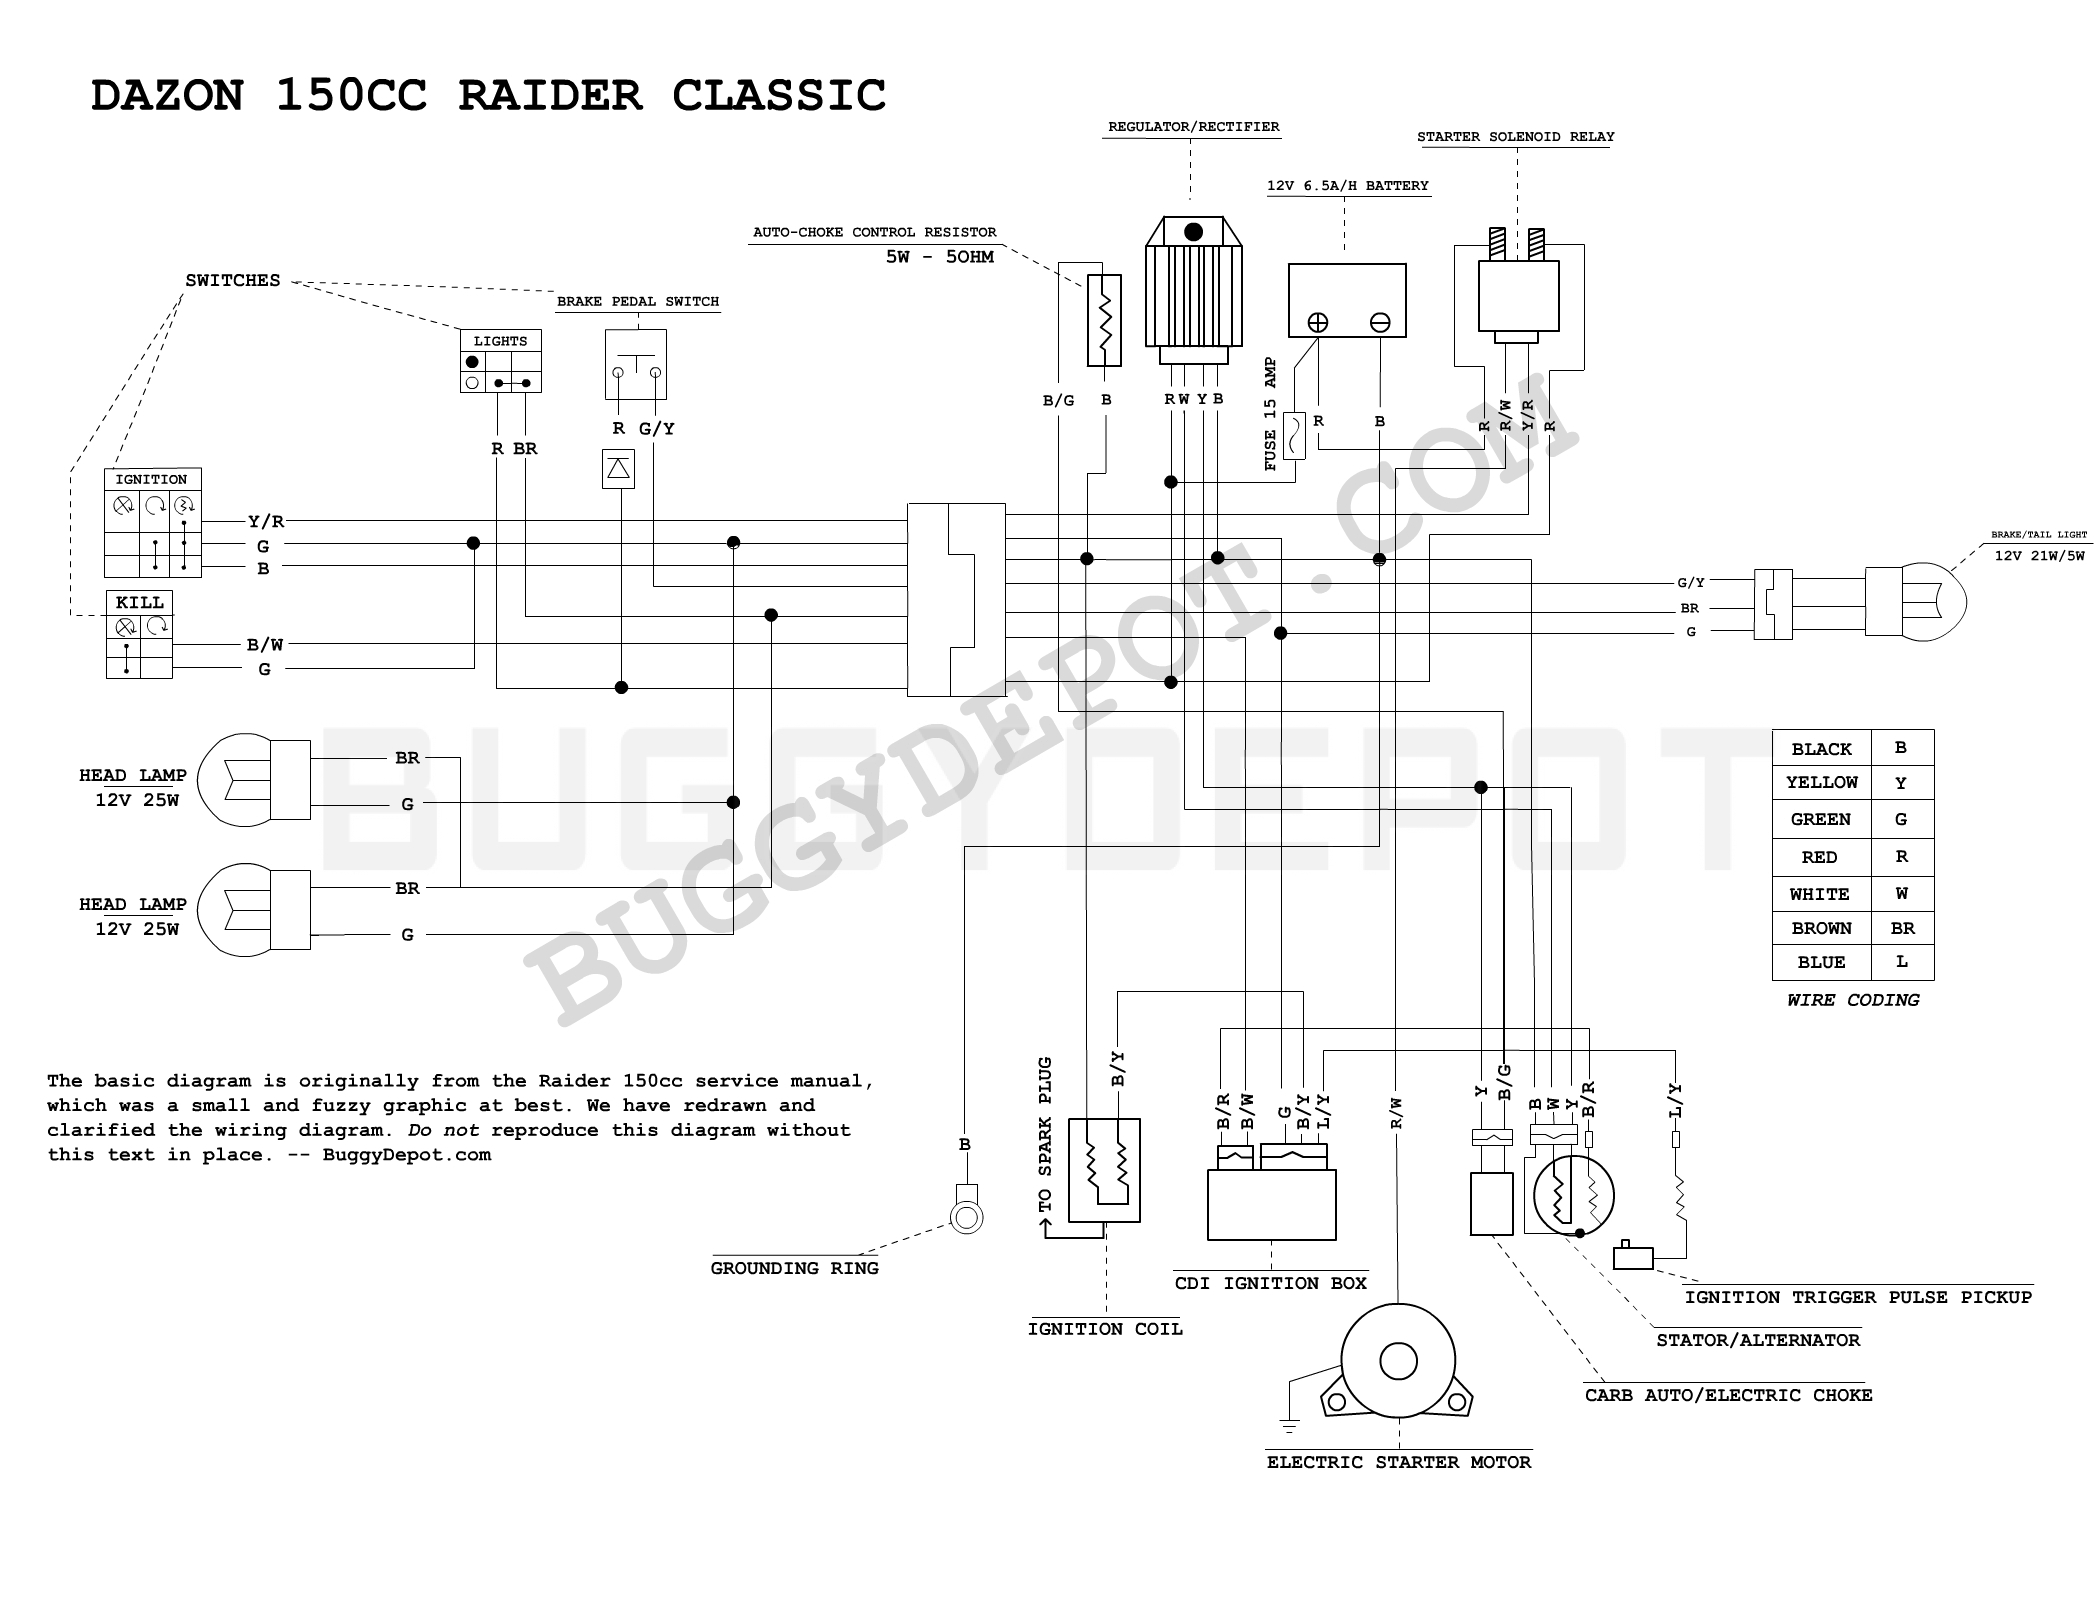 Pinout Diagram Of The Dc Cdi Buggy Depot Technical Center Wiring Diagrams Which Are In Installation Manual And Often Dazon Raider Classic